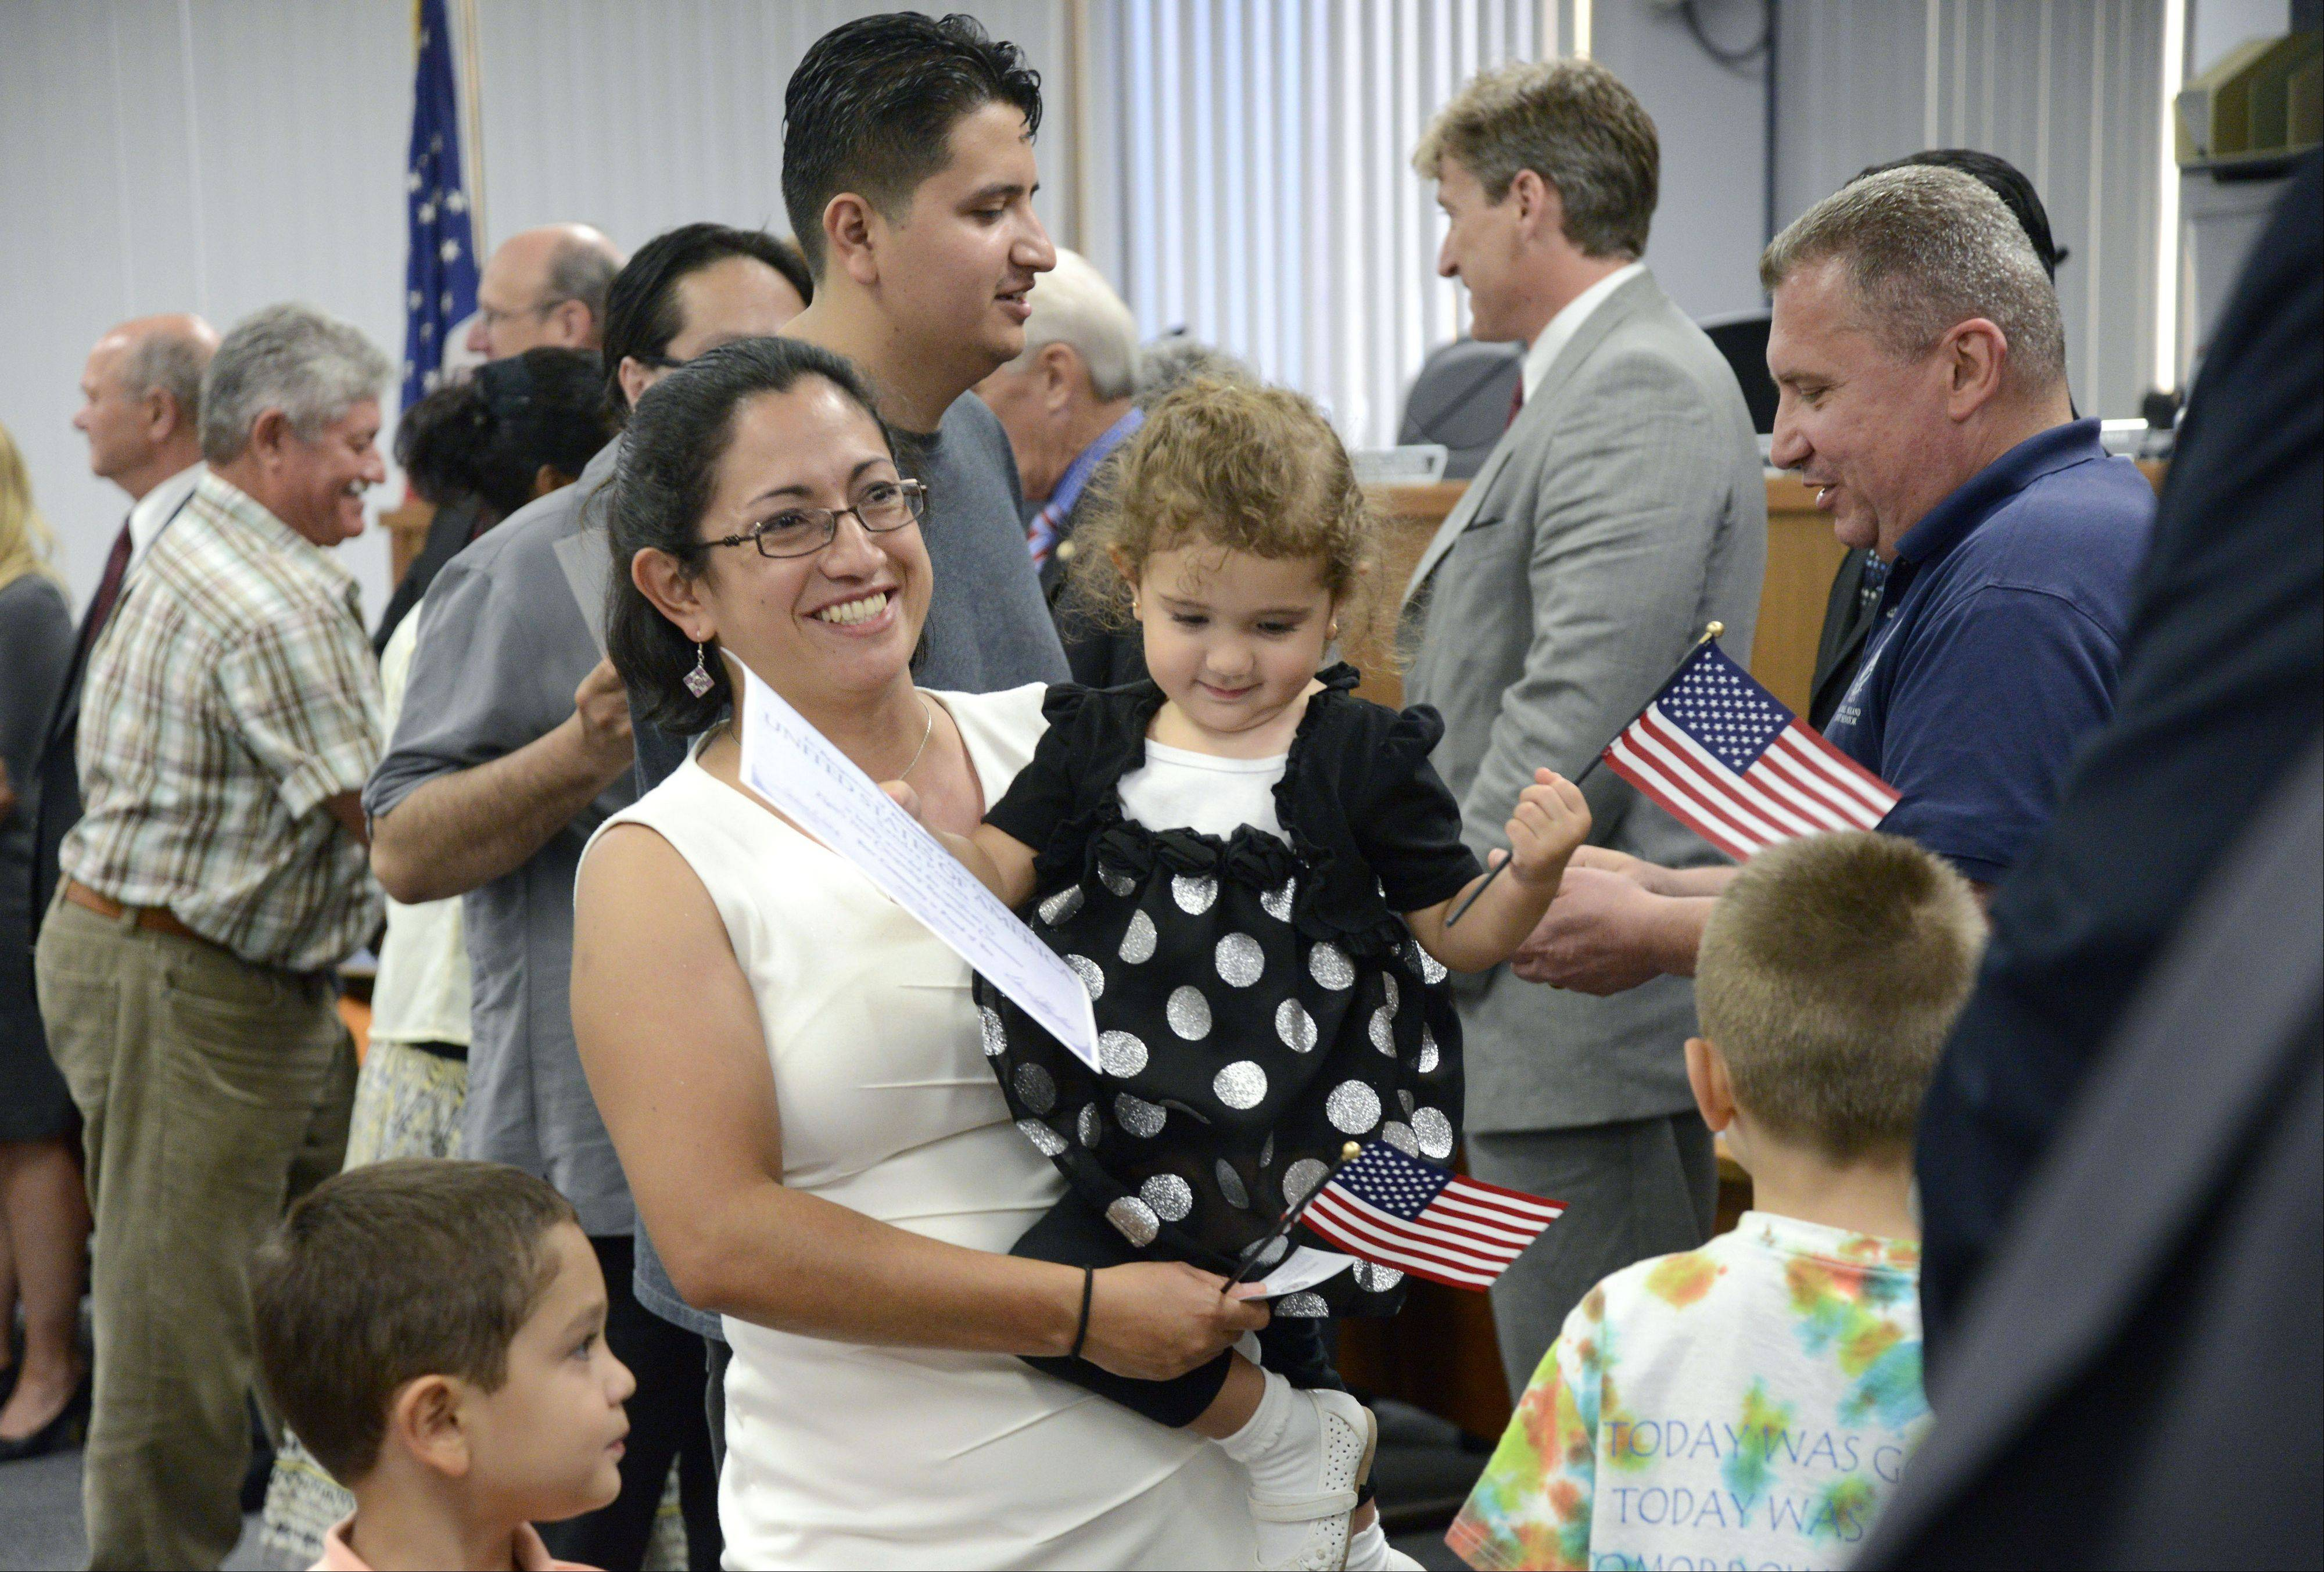 New U.S. citizen Sondra Poulos of West Dundee, a native of Colombia, walks with her son, Andres, 4, and holds her daughter, Marie, 2, during the new citizenship recognition ceremony Wednesday at Elgin city hall.